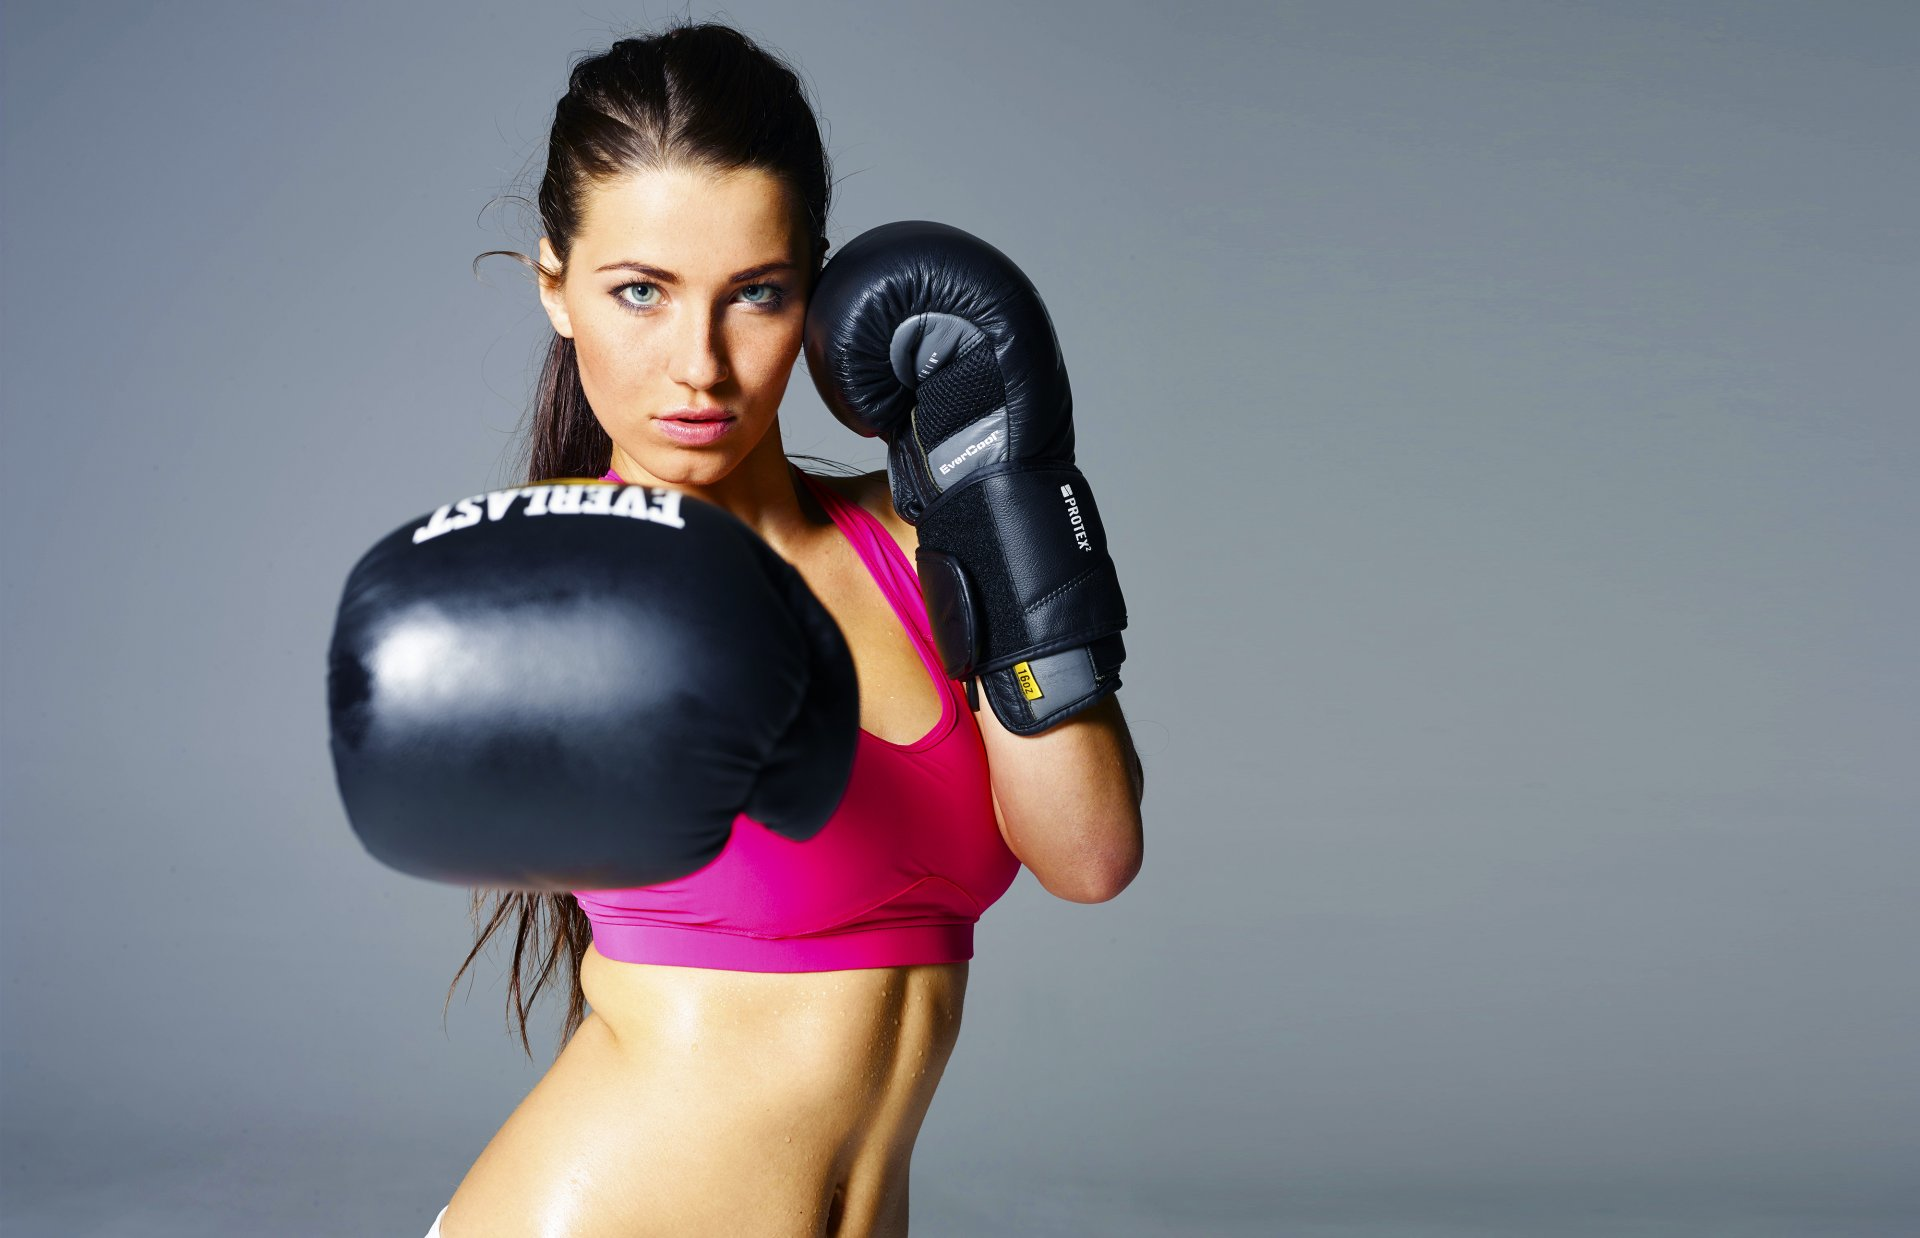 Gorgeous girls boxing — photo 3